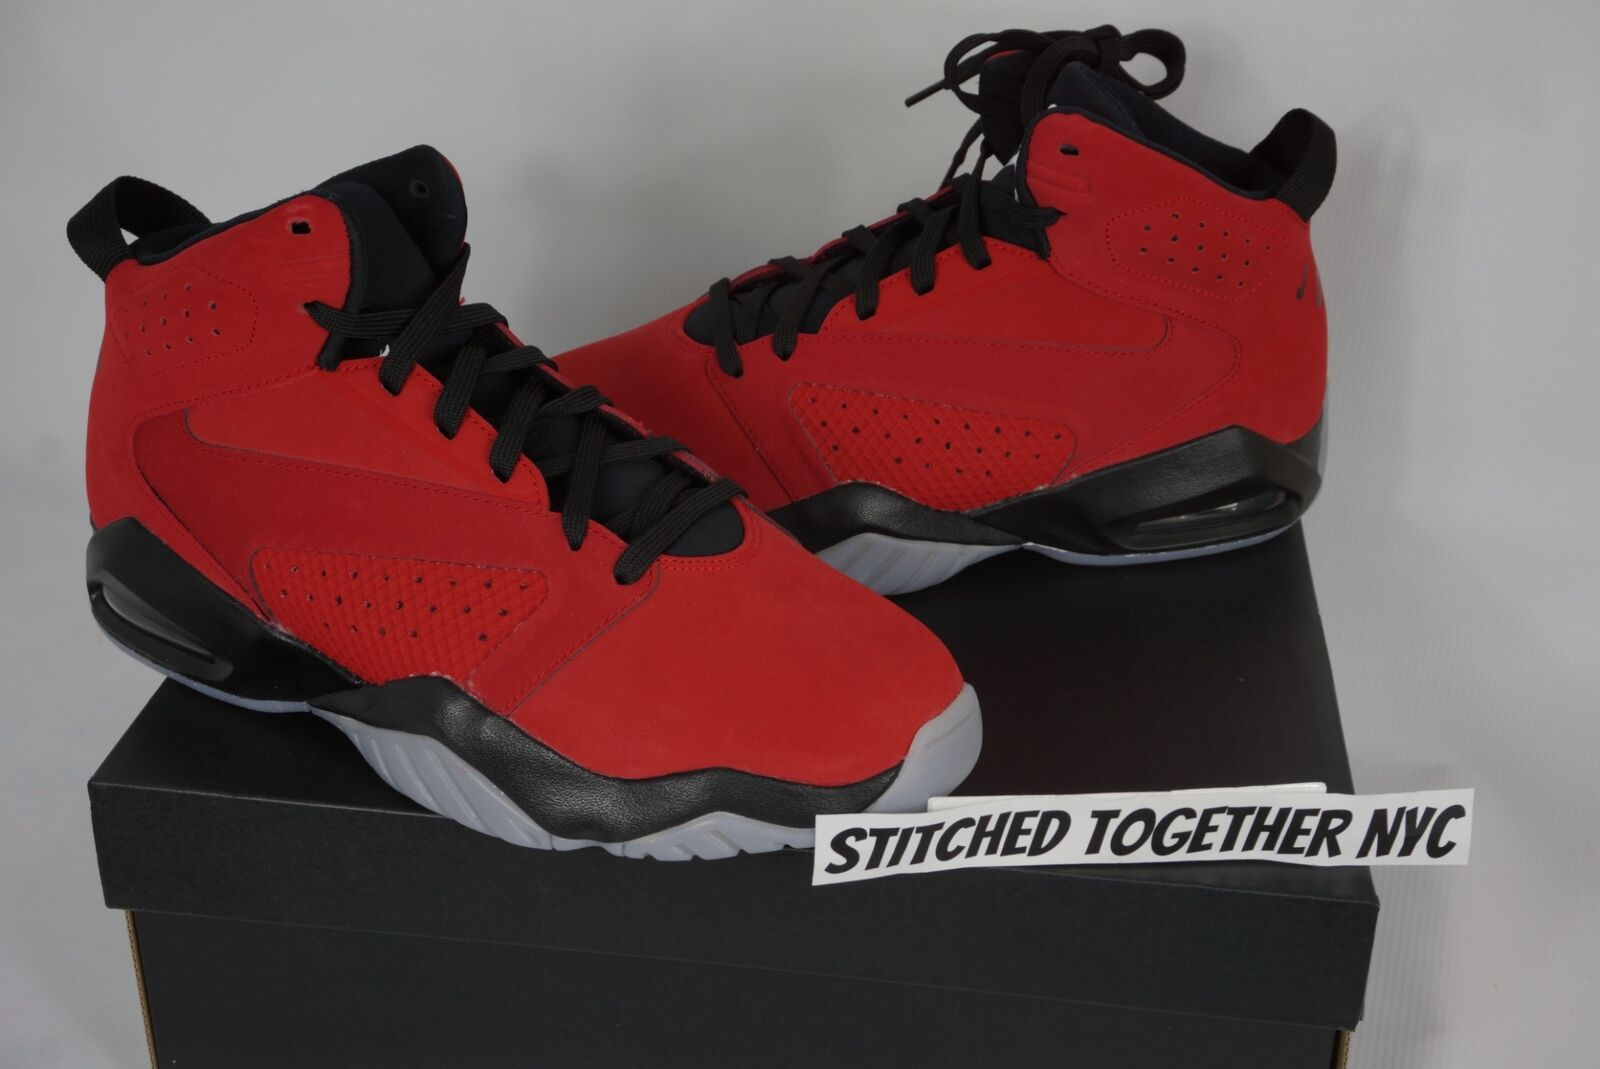 Price reduction MEN'S AIR JORDAN LIFT OFF GYM RED/BLACK/WHITE/WOLF GREY The latest discount shoes for men and women